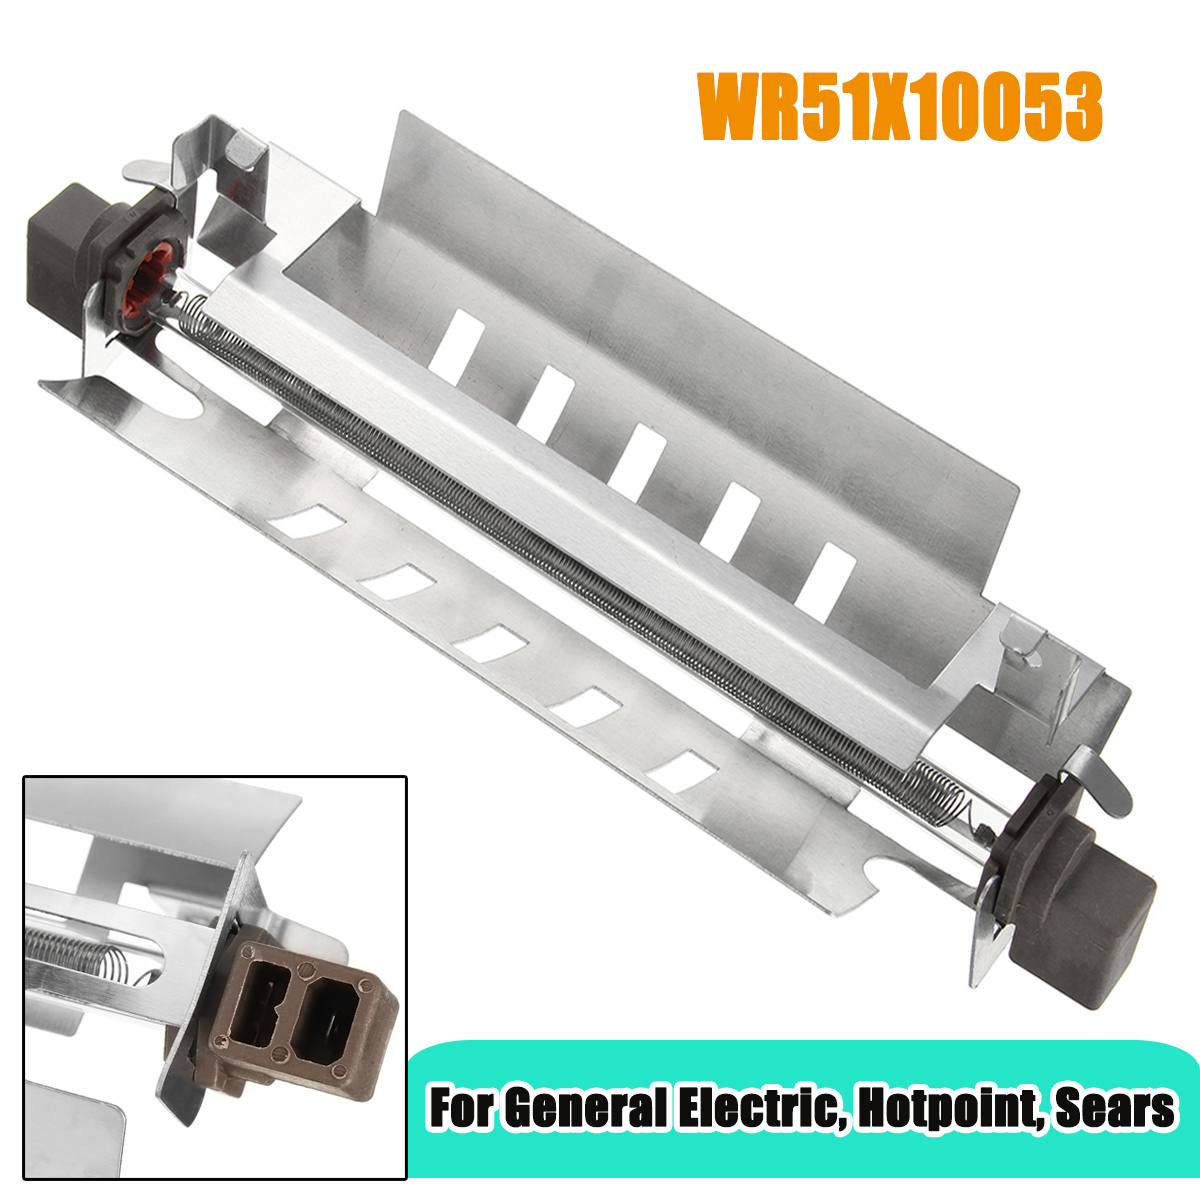 WR51X10053  Refrigerator Defrost Heater replaces GE  Hotpoint